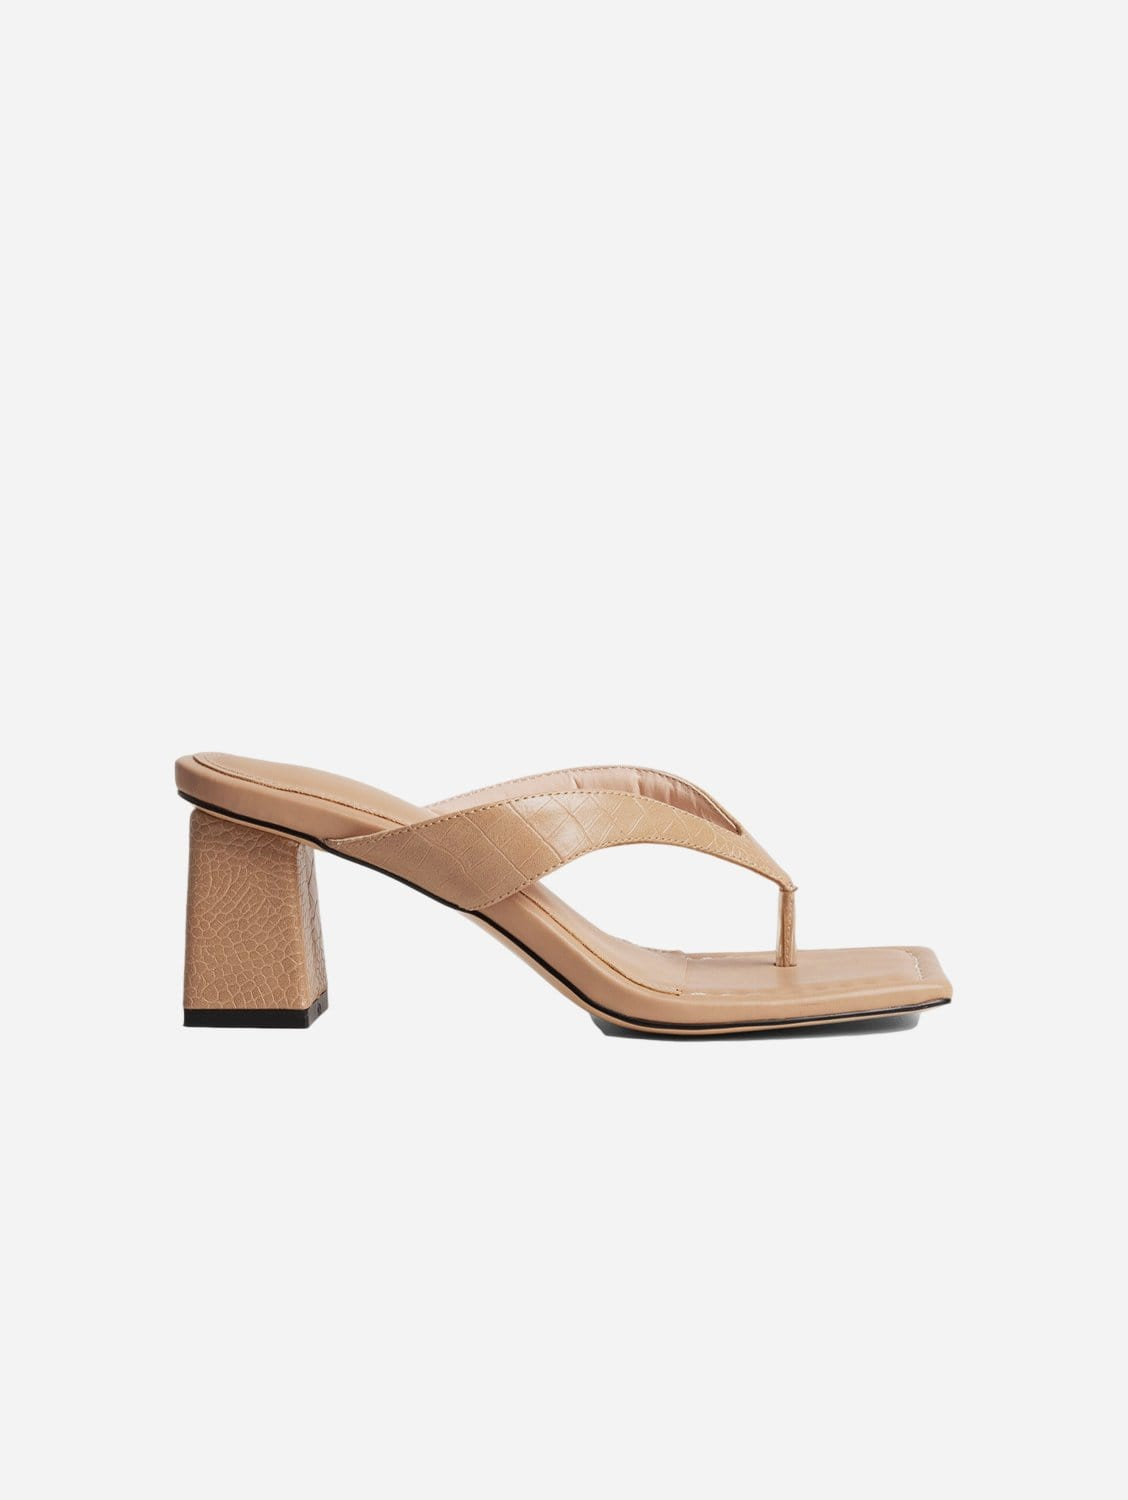 Philo Up-Cycled Vegan Leather Square Toe Heeled Sandal | Tan